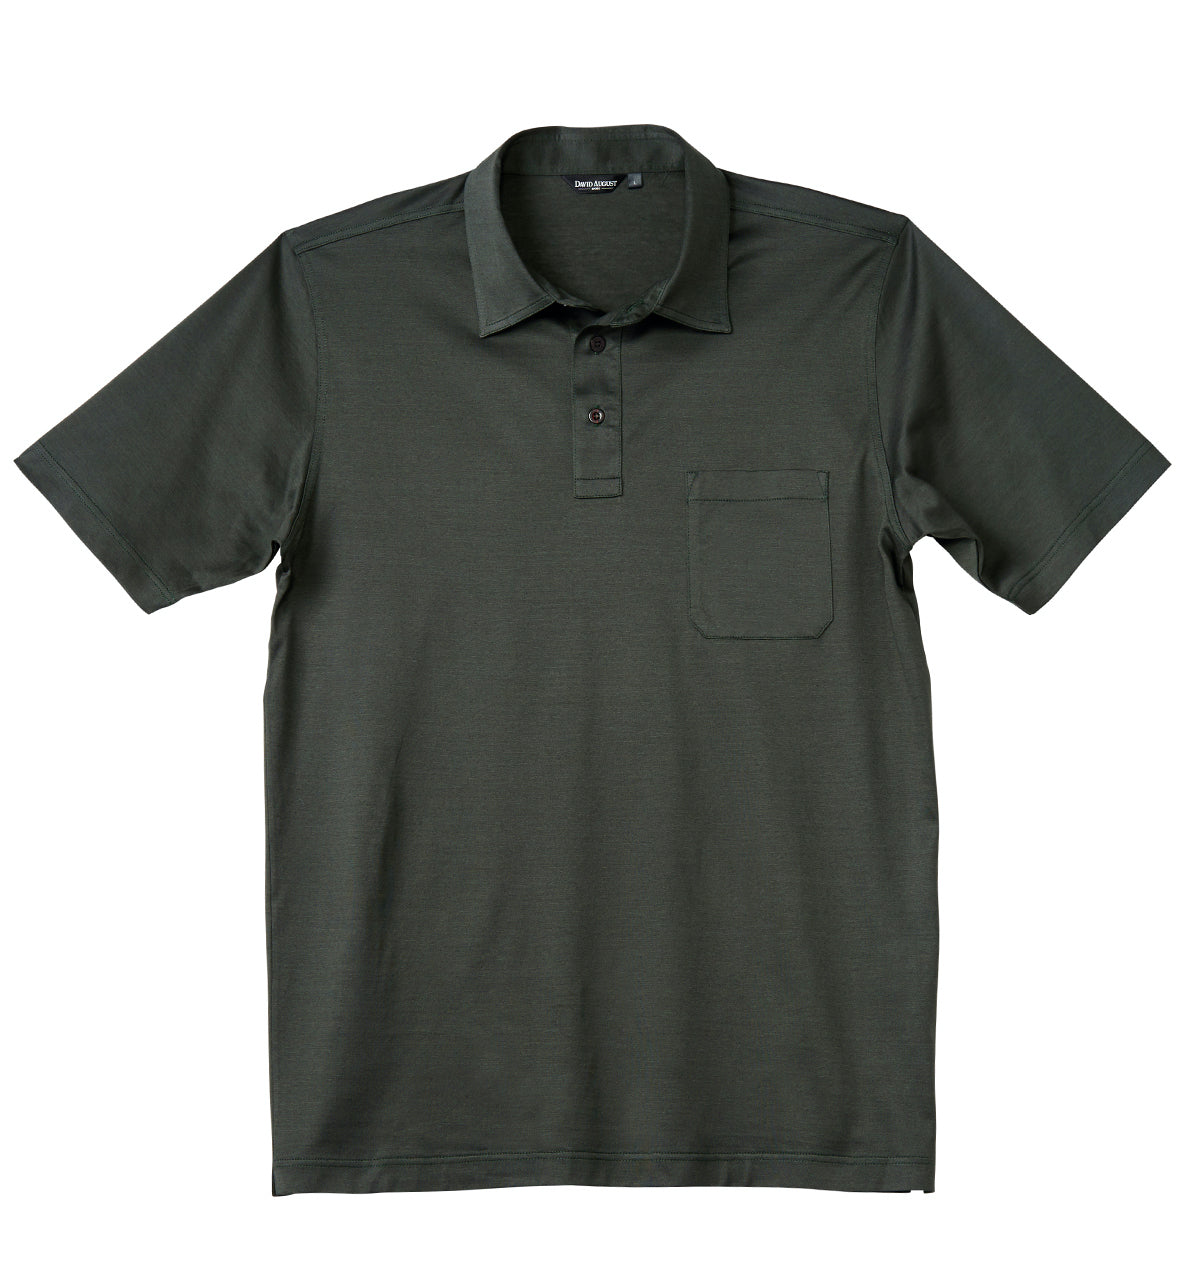 Luxury Mercerized Cotton Polo in Olive